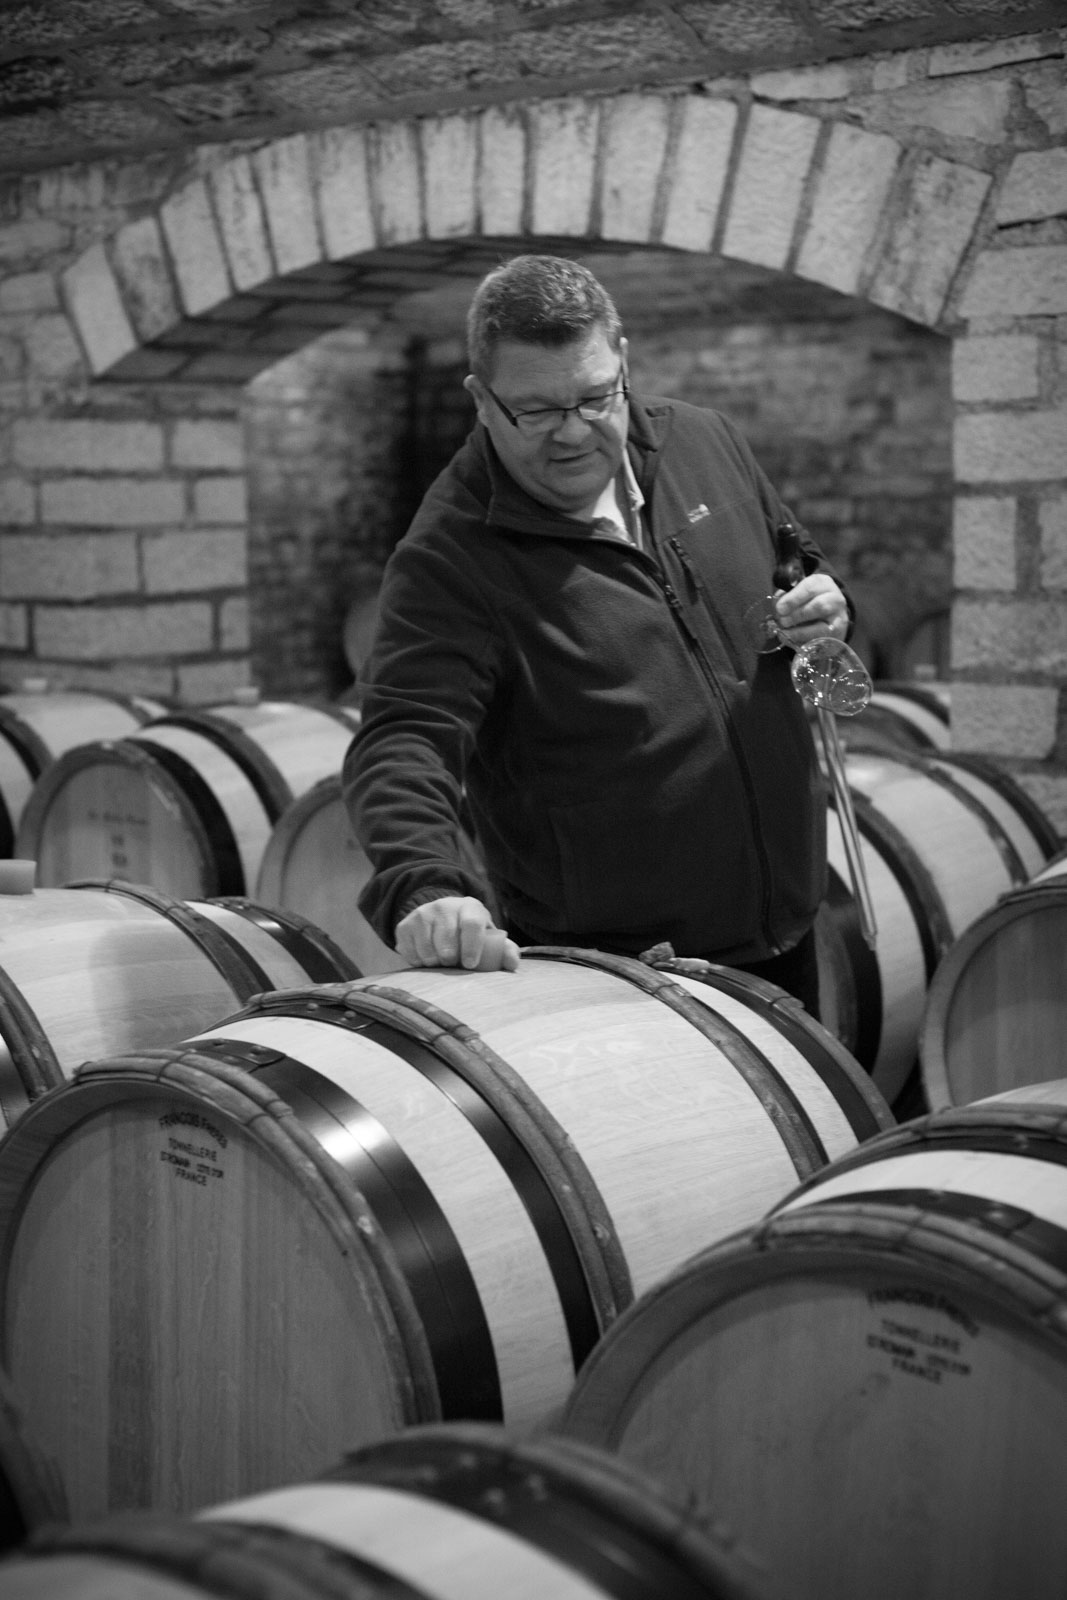 Bertrand de Villaine in the cellar of Domaine de la Romanée-Conti. Notice the stones he has placed on the edge of the barrel; his way of indicating which barrel has been sampled so he can return the wine when the tasting is done. One of many little touches that makes the experience at Domaine de la Romanée-Conti so unique. ©Kevin Day / Opening a Bottle